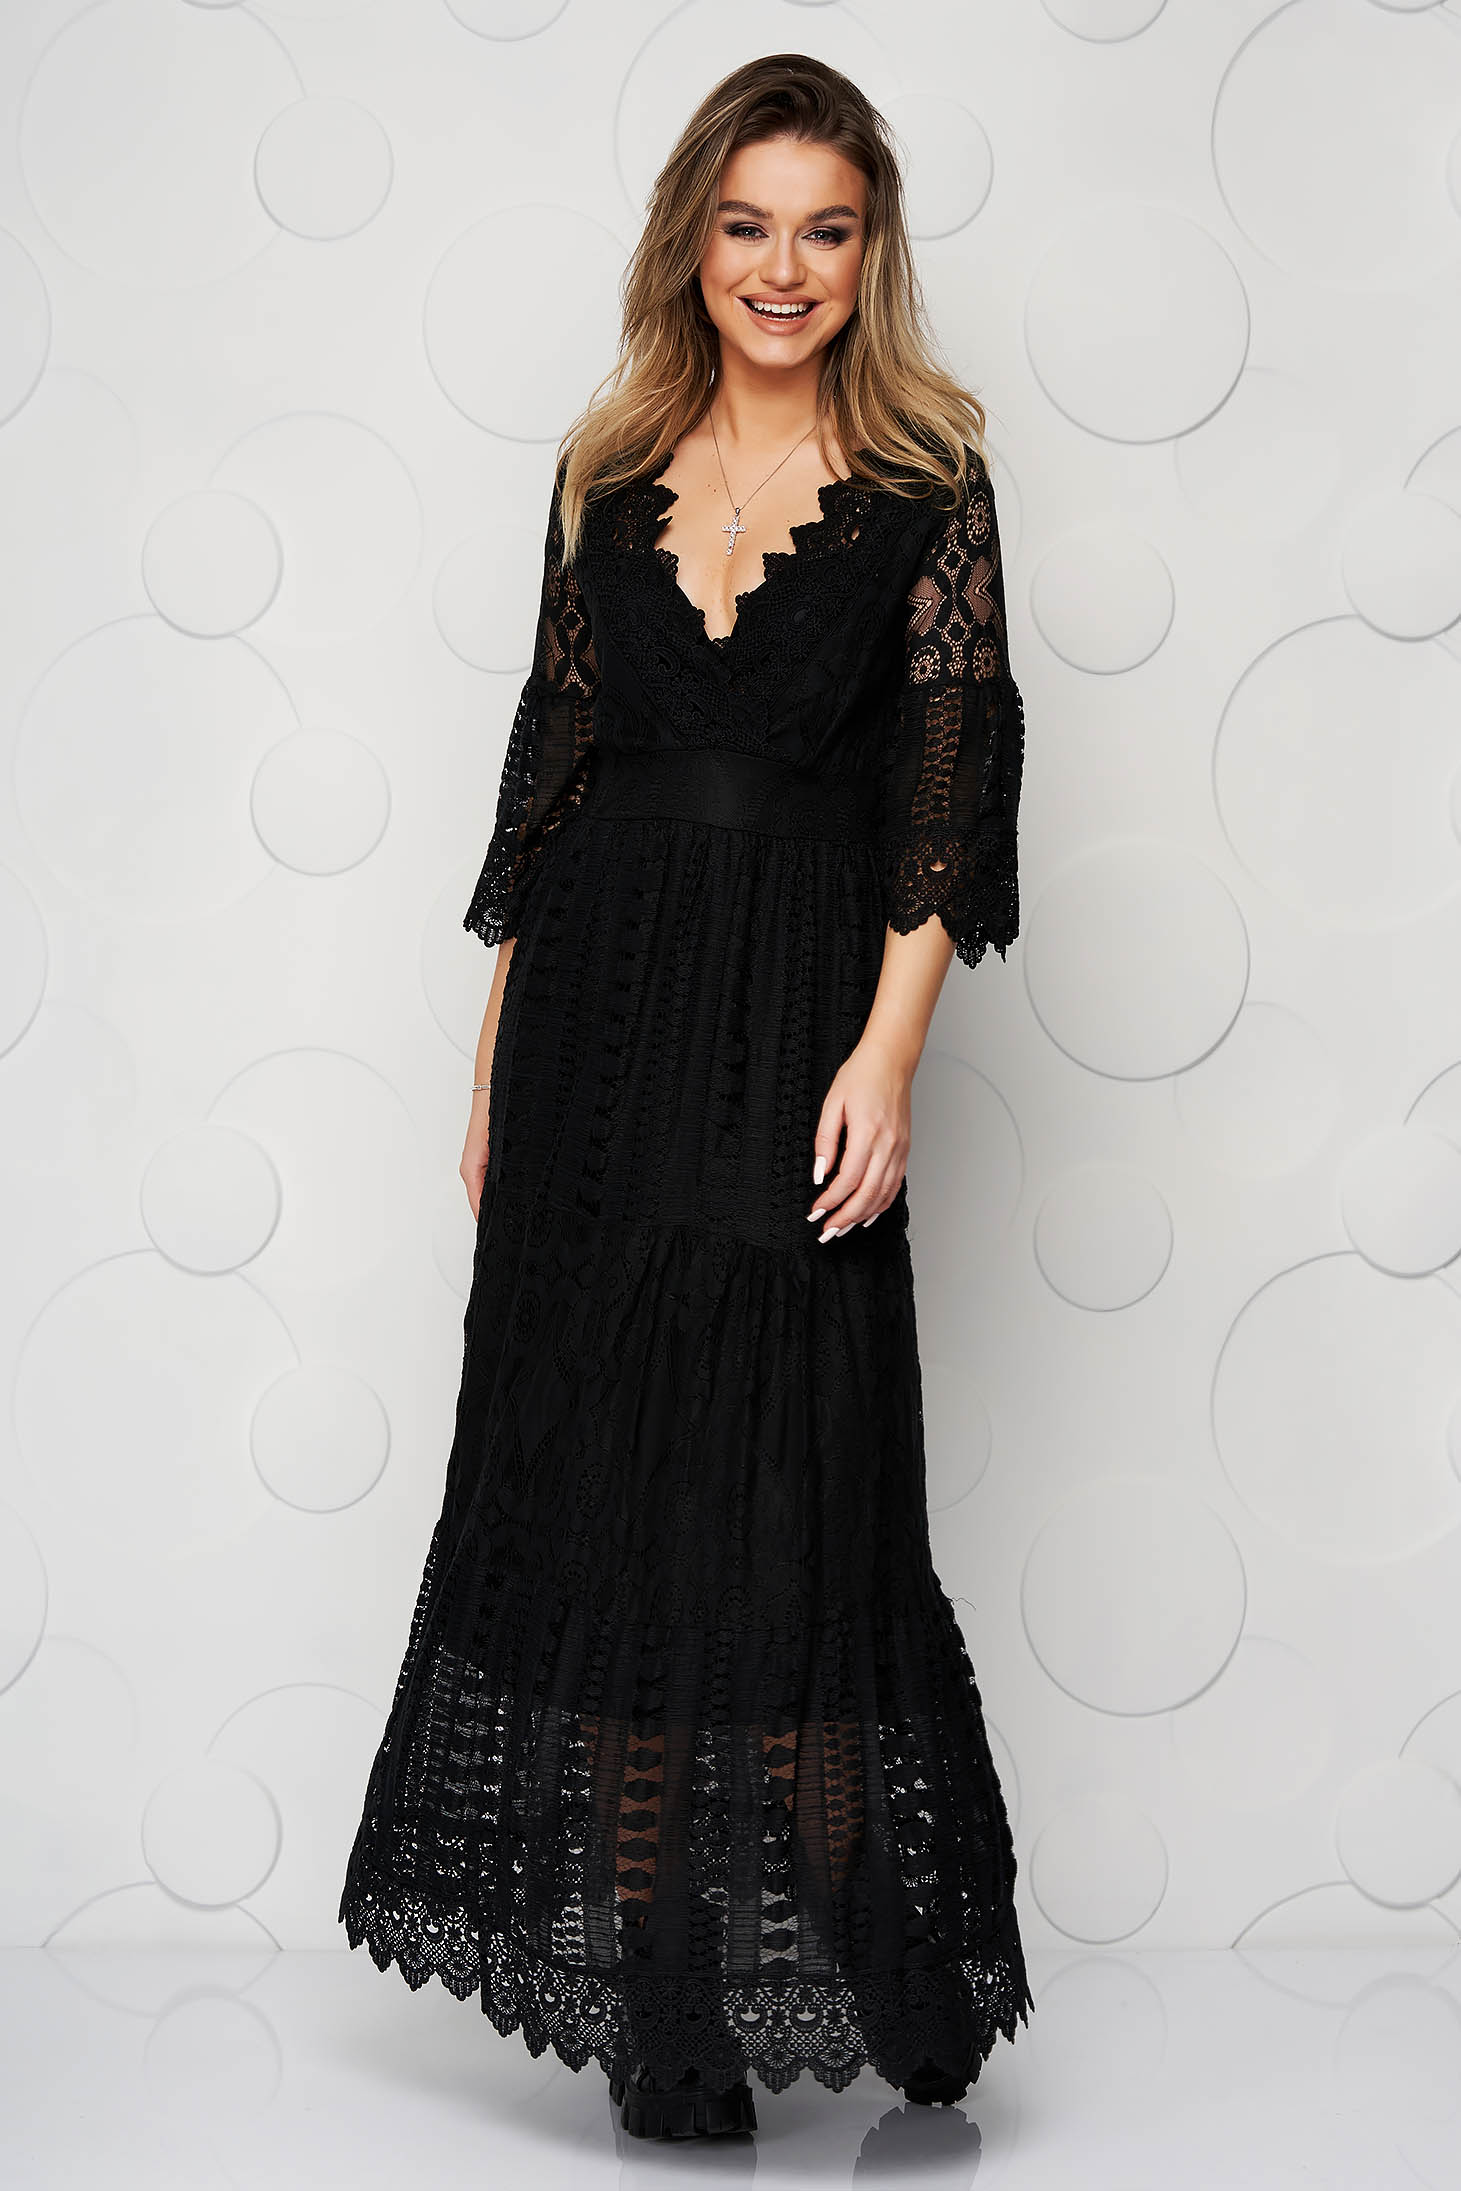 Black dress cloche with elastic waist lace overlay with v-neckline